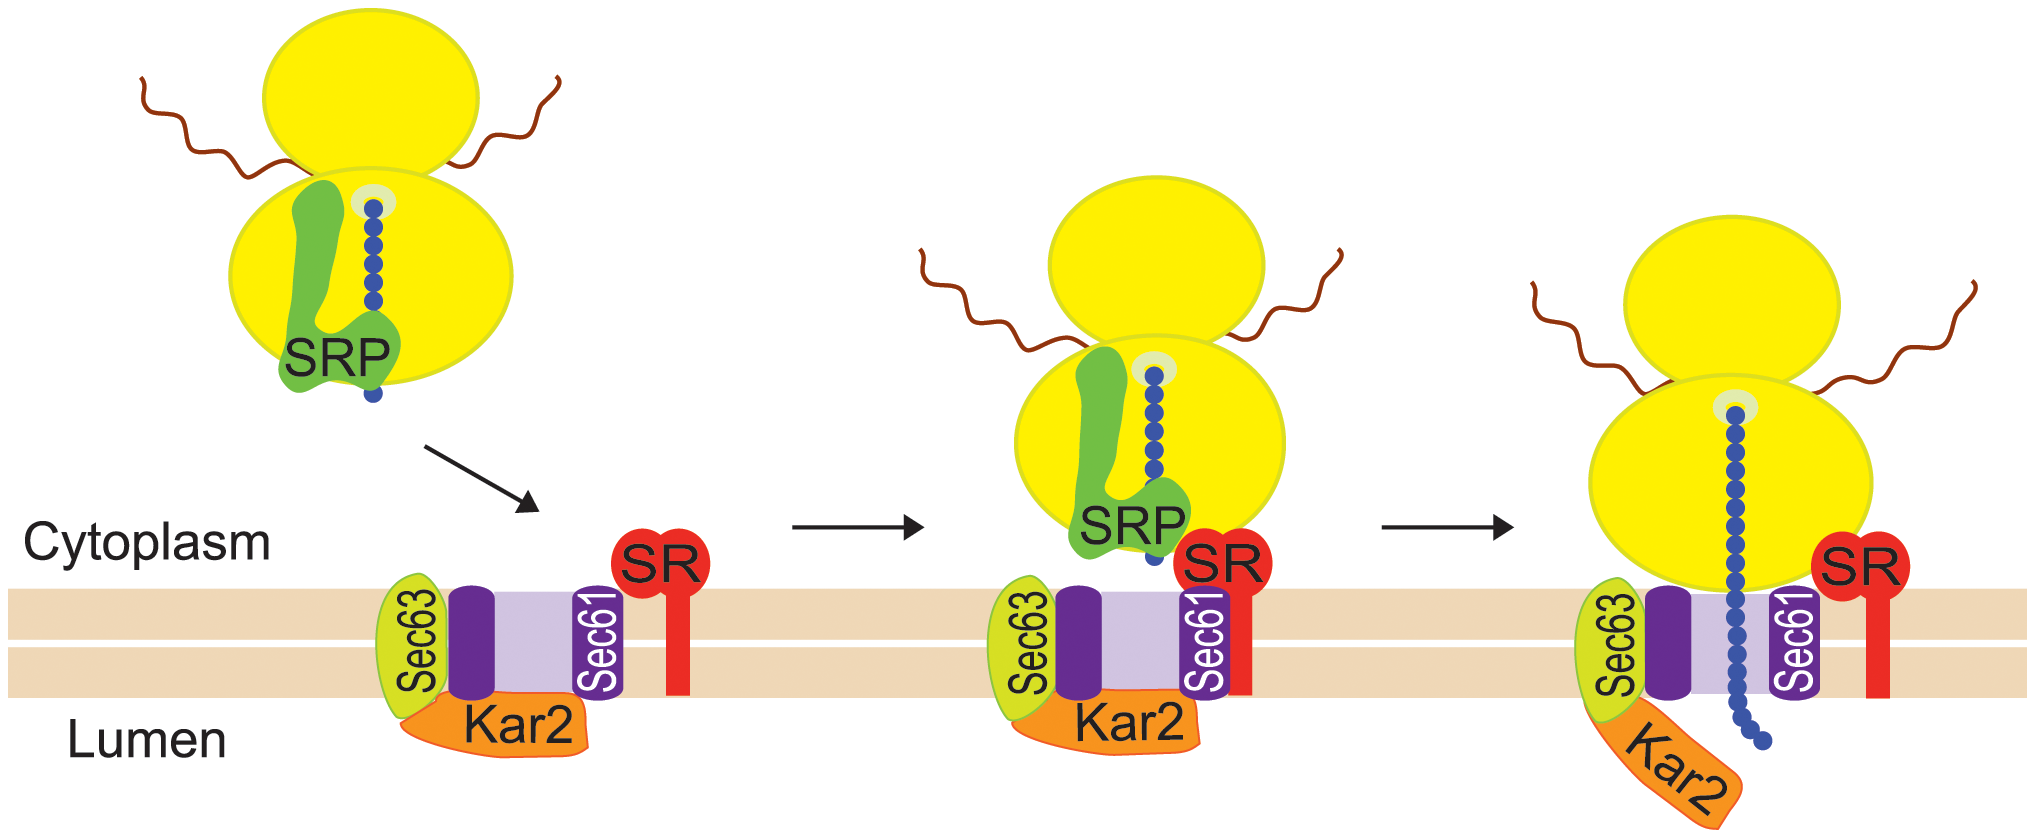 Co-translational targeting of mRNA to the ER is mediated by SRP.